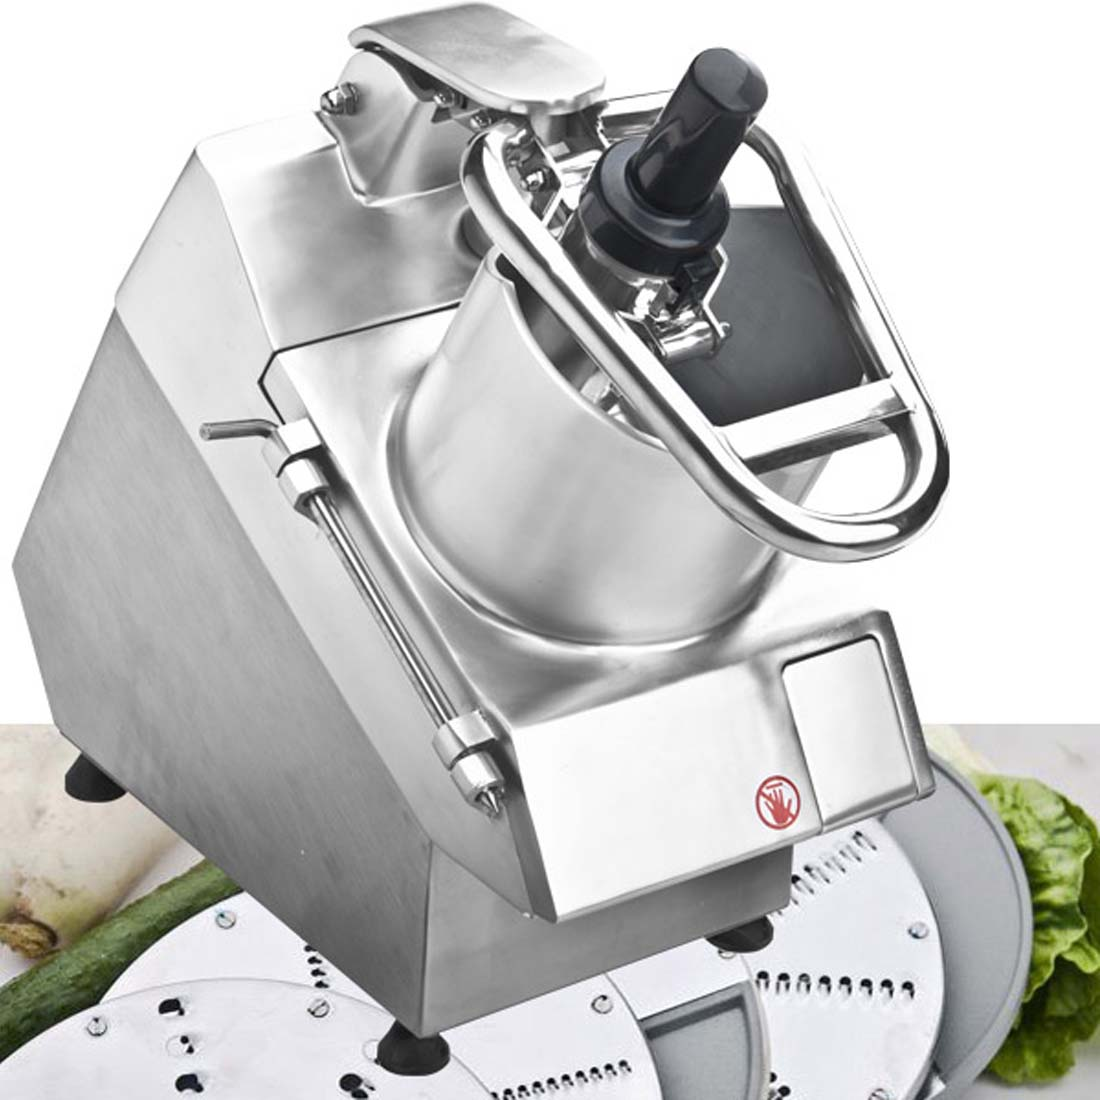 VC65MS Vegetable Cutter